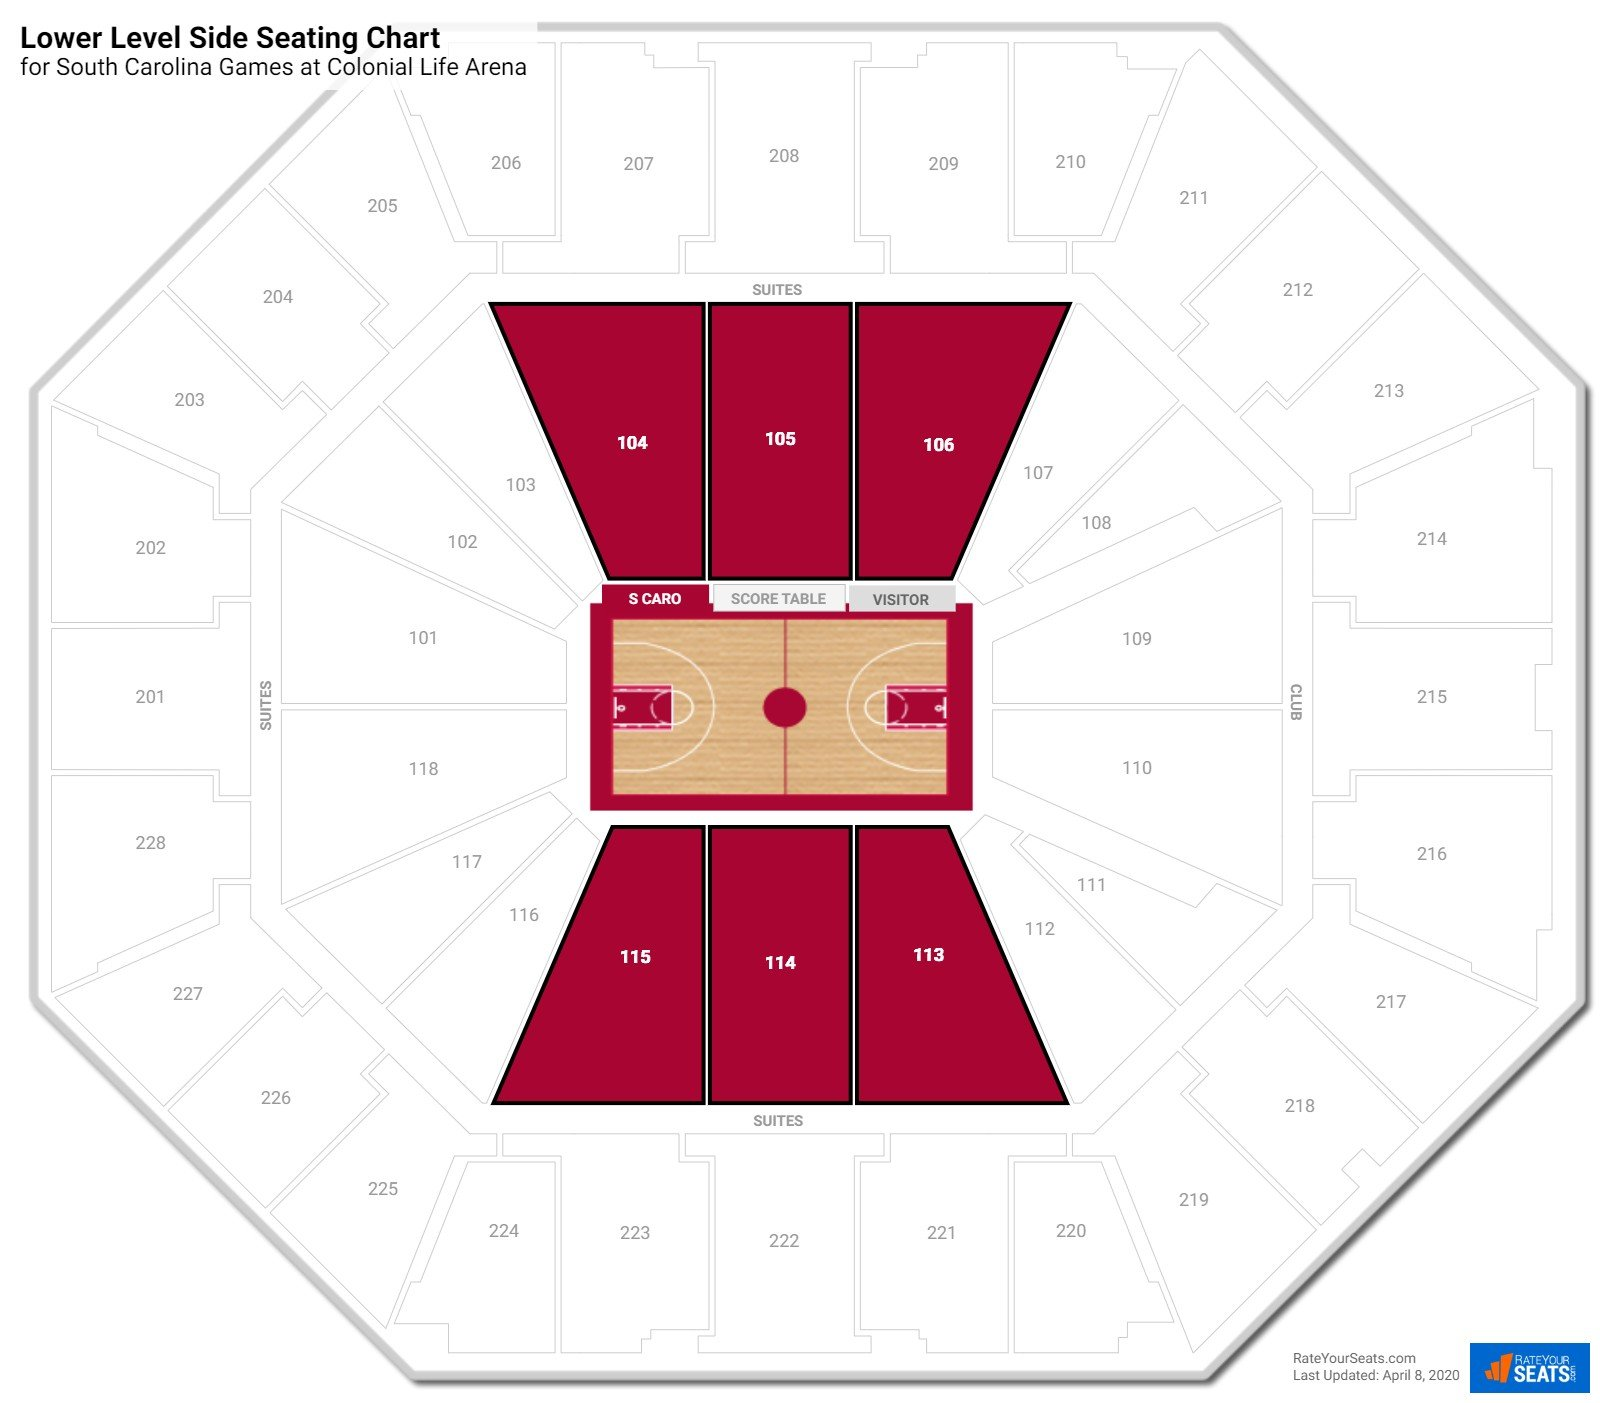 Colonial Life Arena Lower Level Side